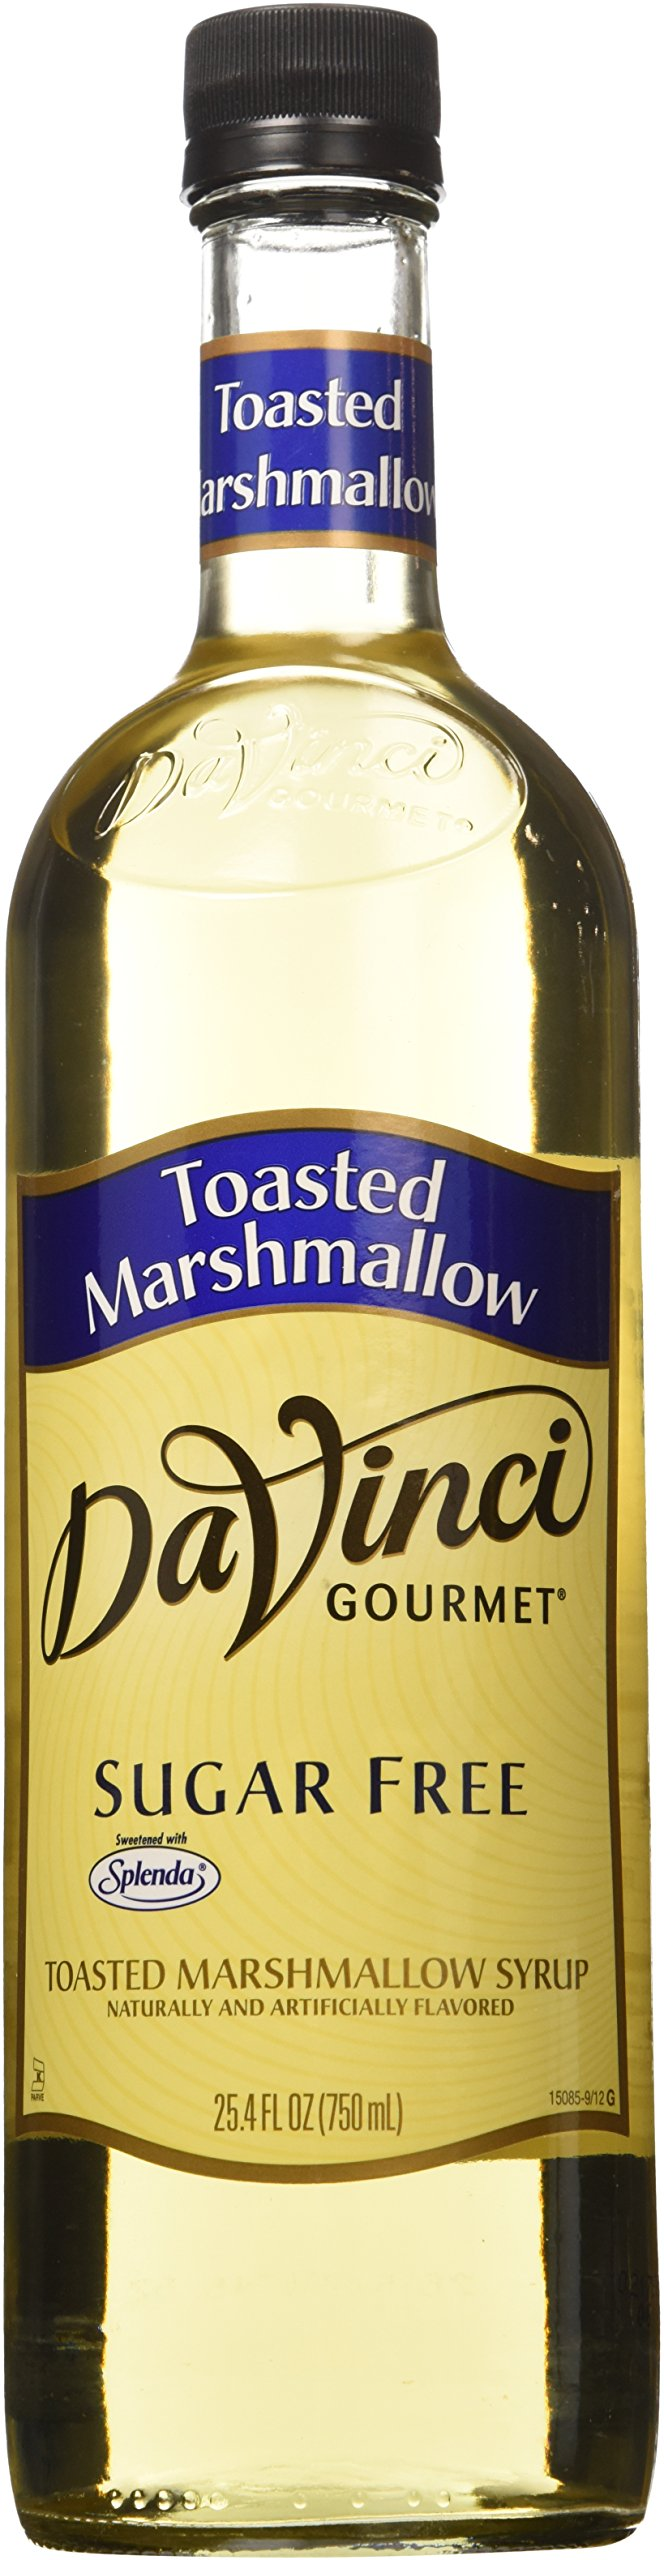 Da Vinci SUGAR FREE Toasted Marshmallow Syrup 750mL